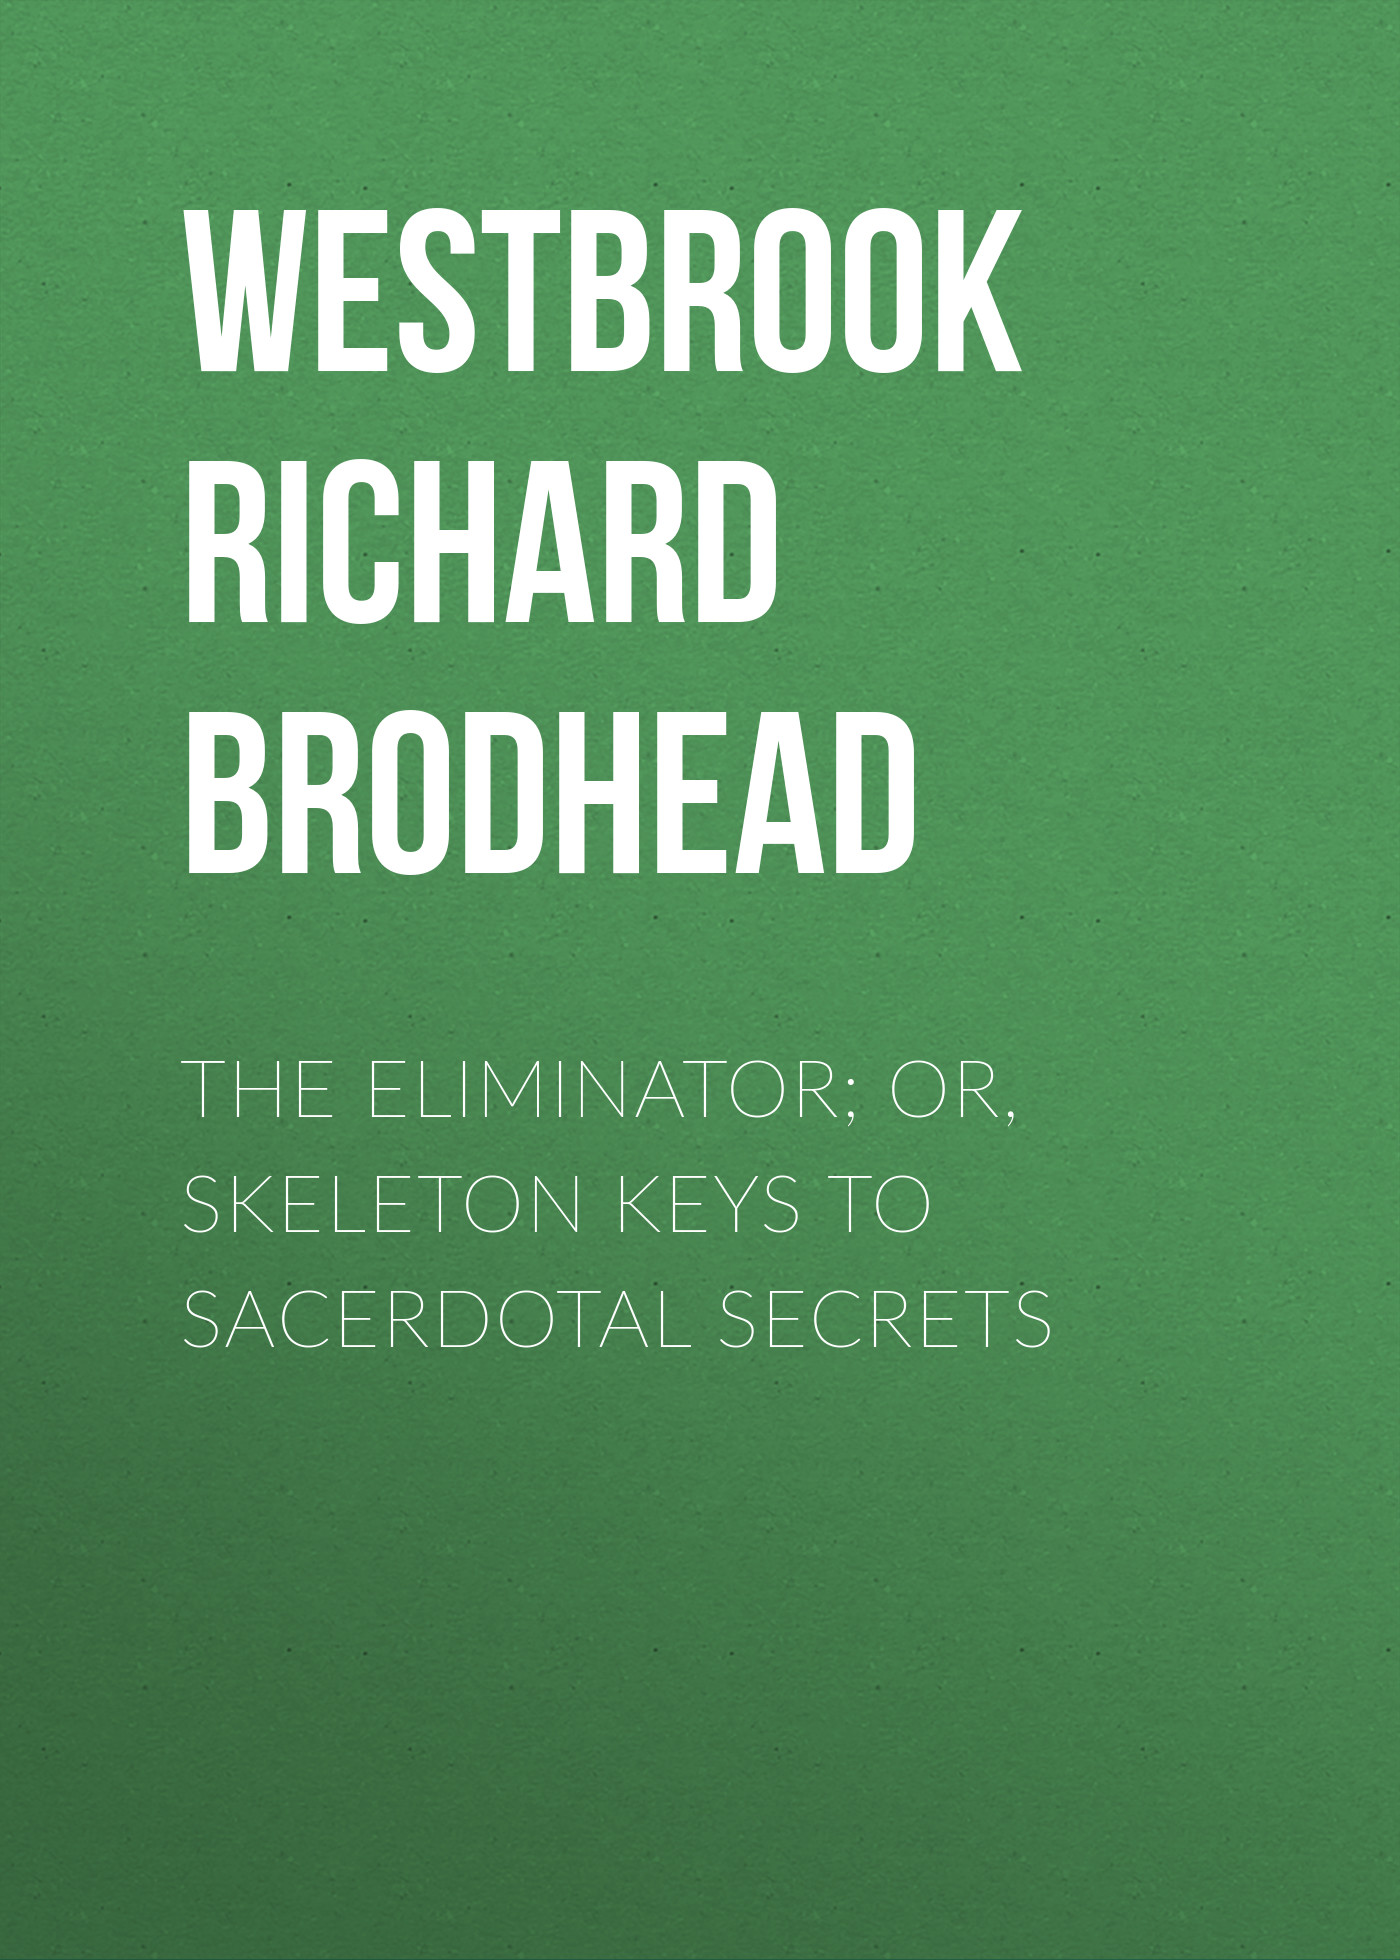 Westbrook Richard Brodhead The Eliminator; or, Skeleton Keys to Sacerdotal Secrets the little duke or richard the fearless